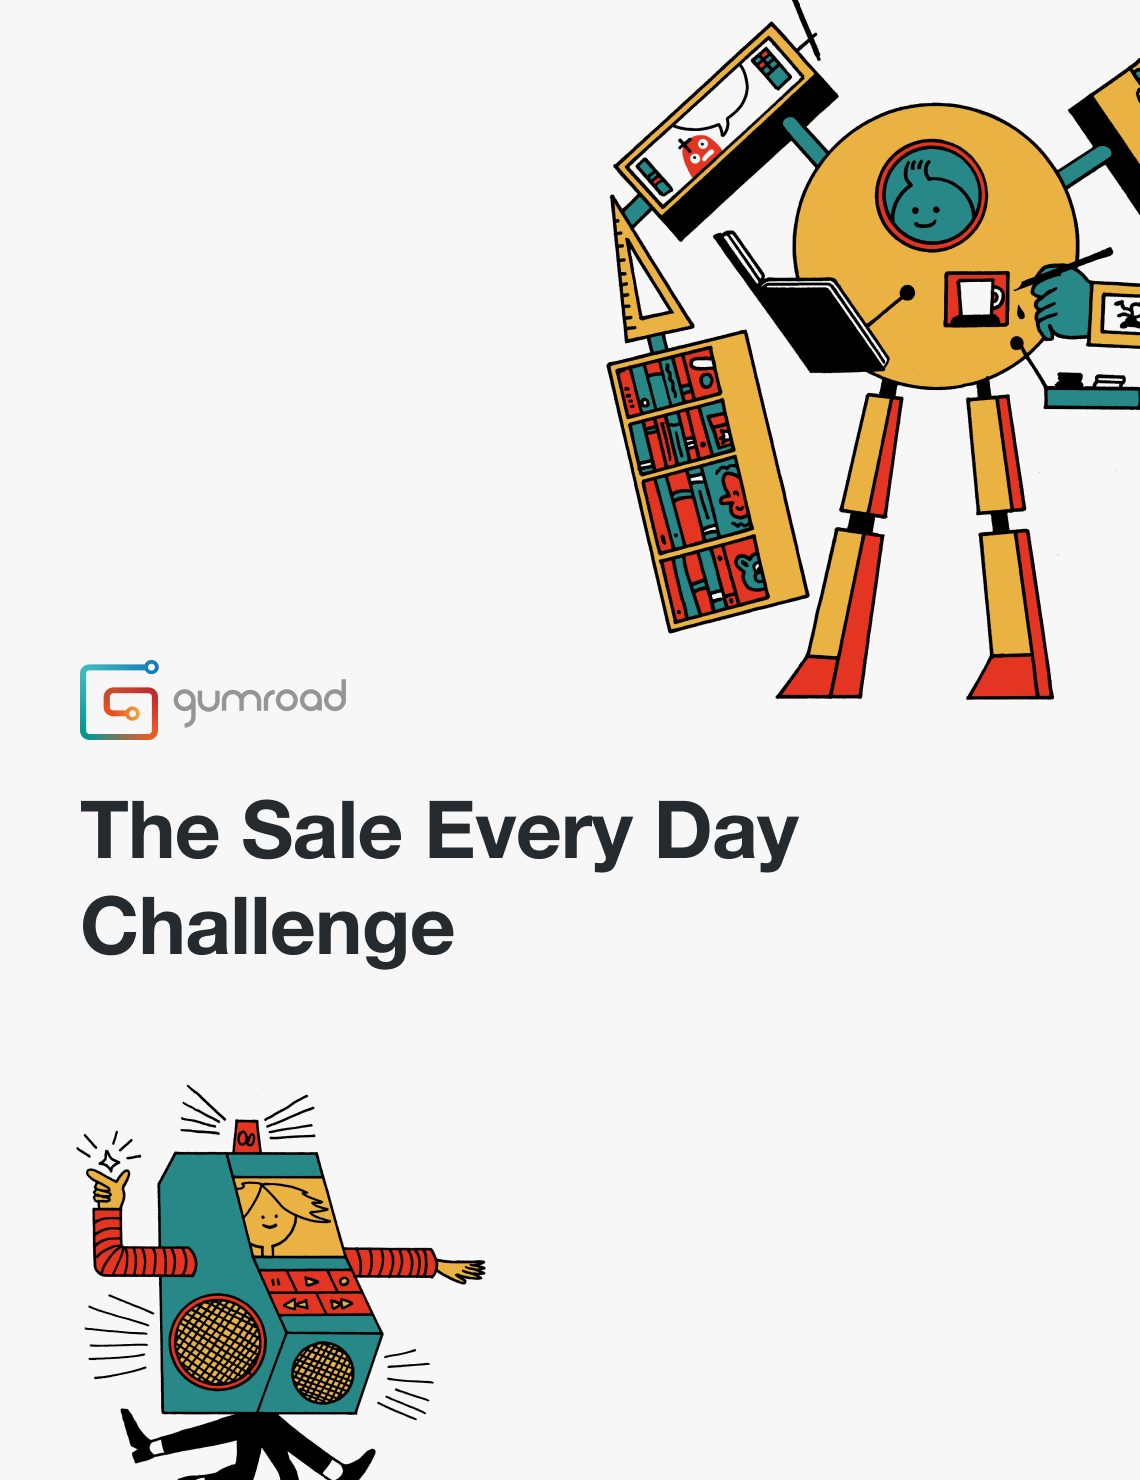 The sale every day challenge by Gumroad.